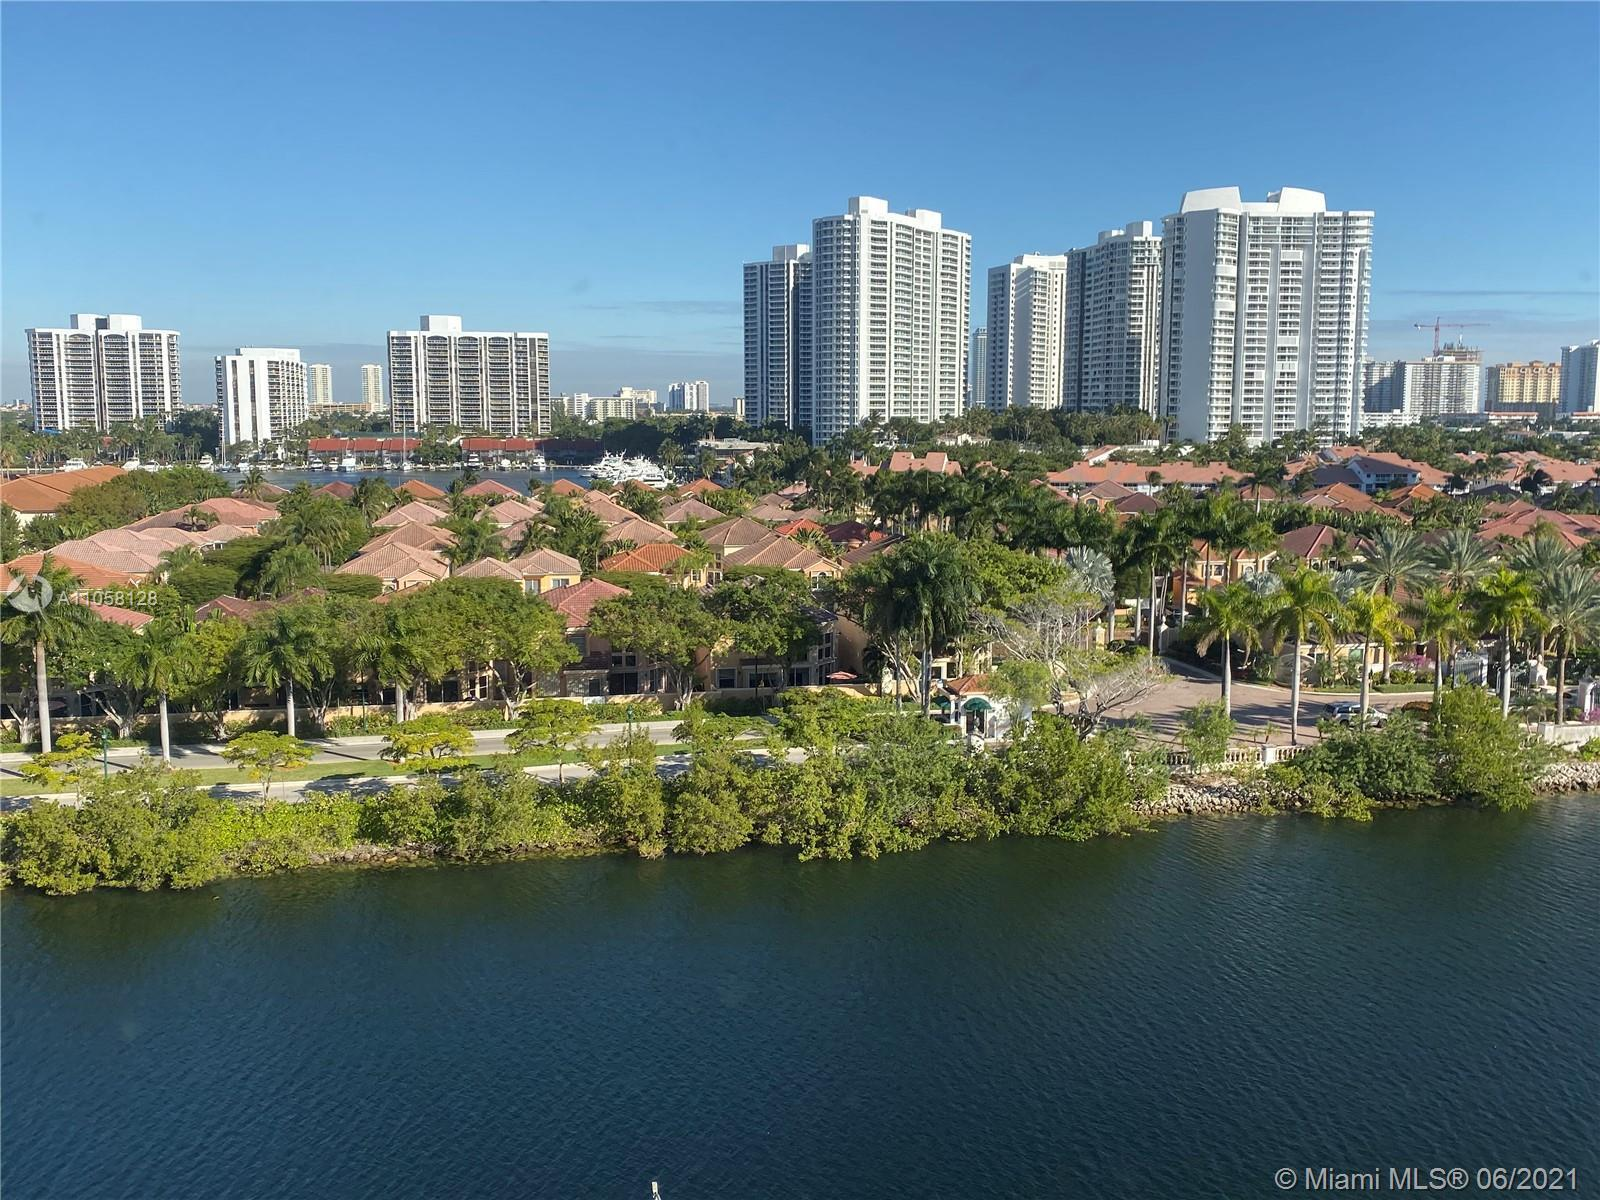 Live in the city of Aventura / across from the beautiful 3-mile walking and bike path loop around th